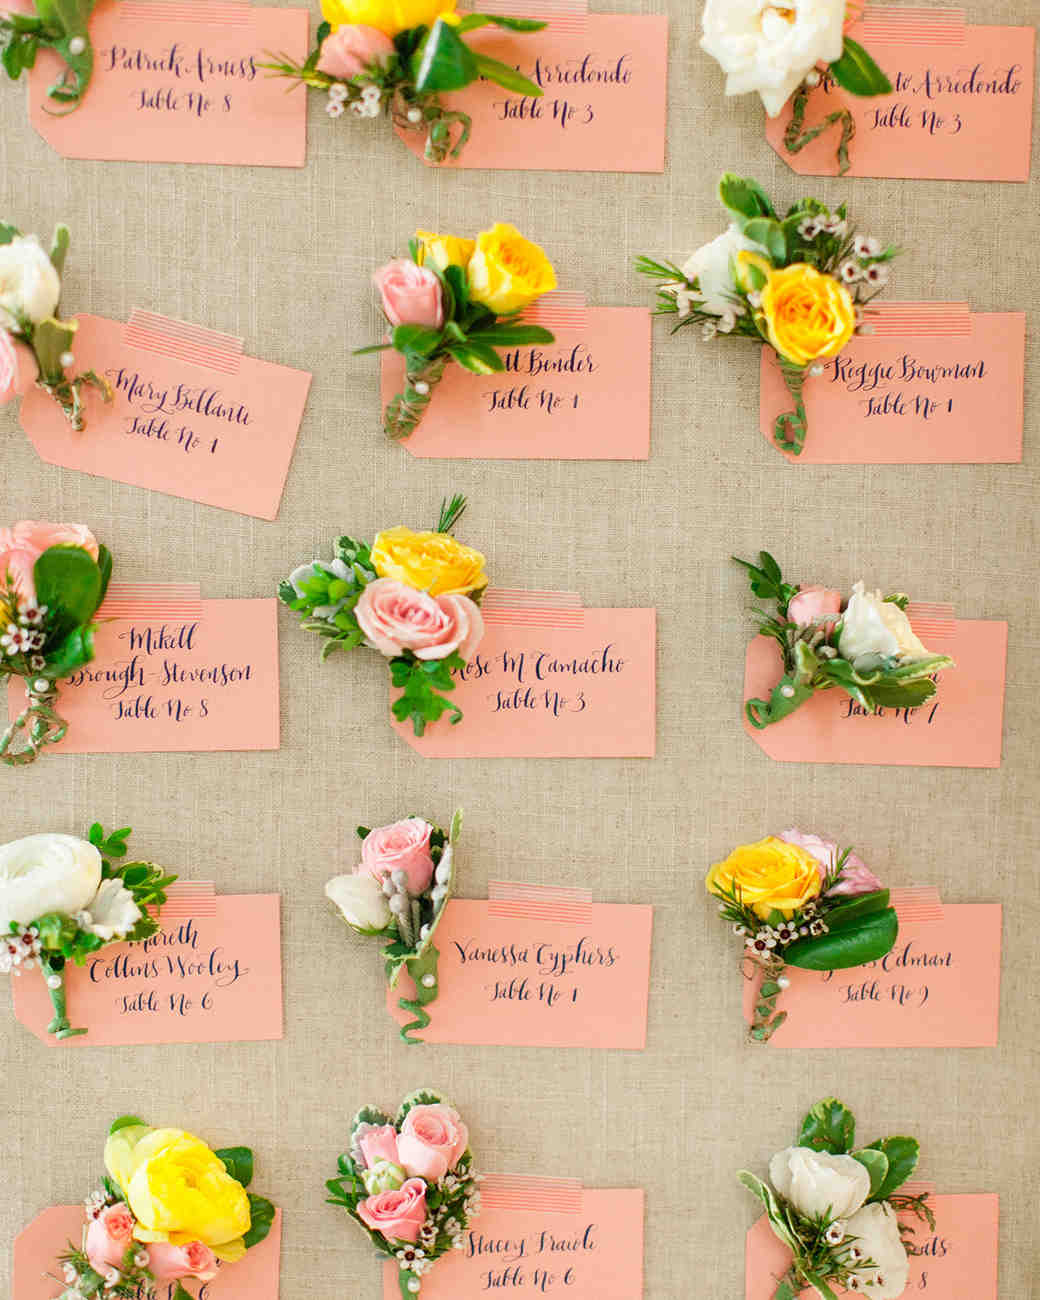 Colorful peach and burlap seating chart